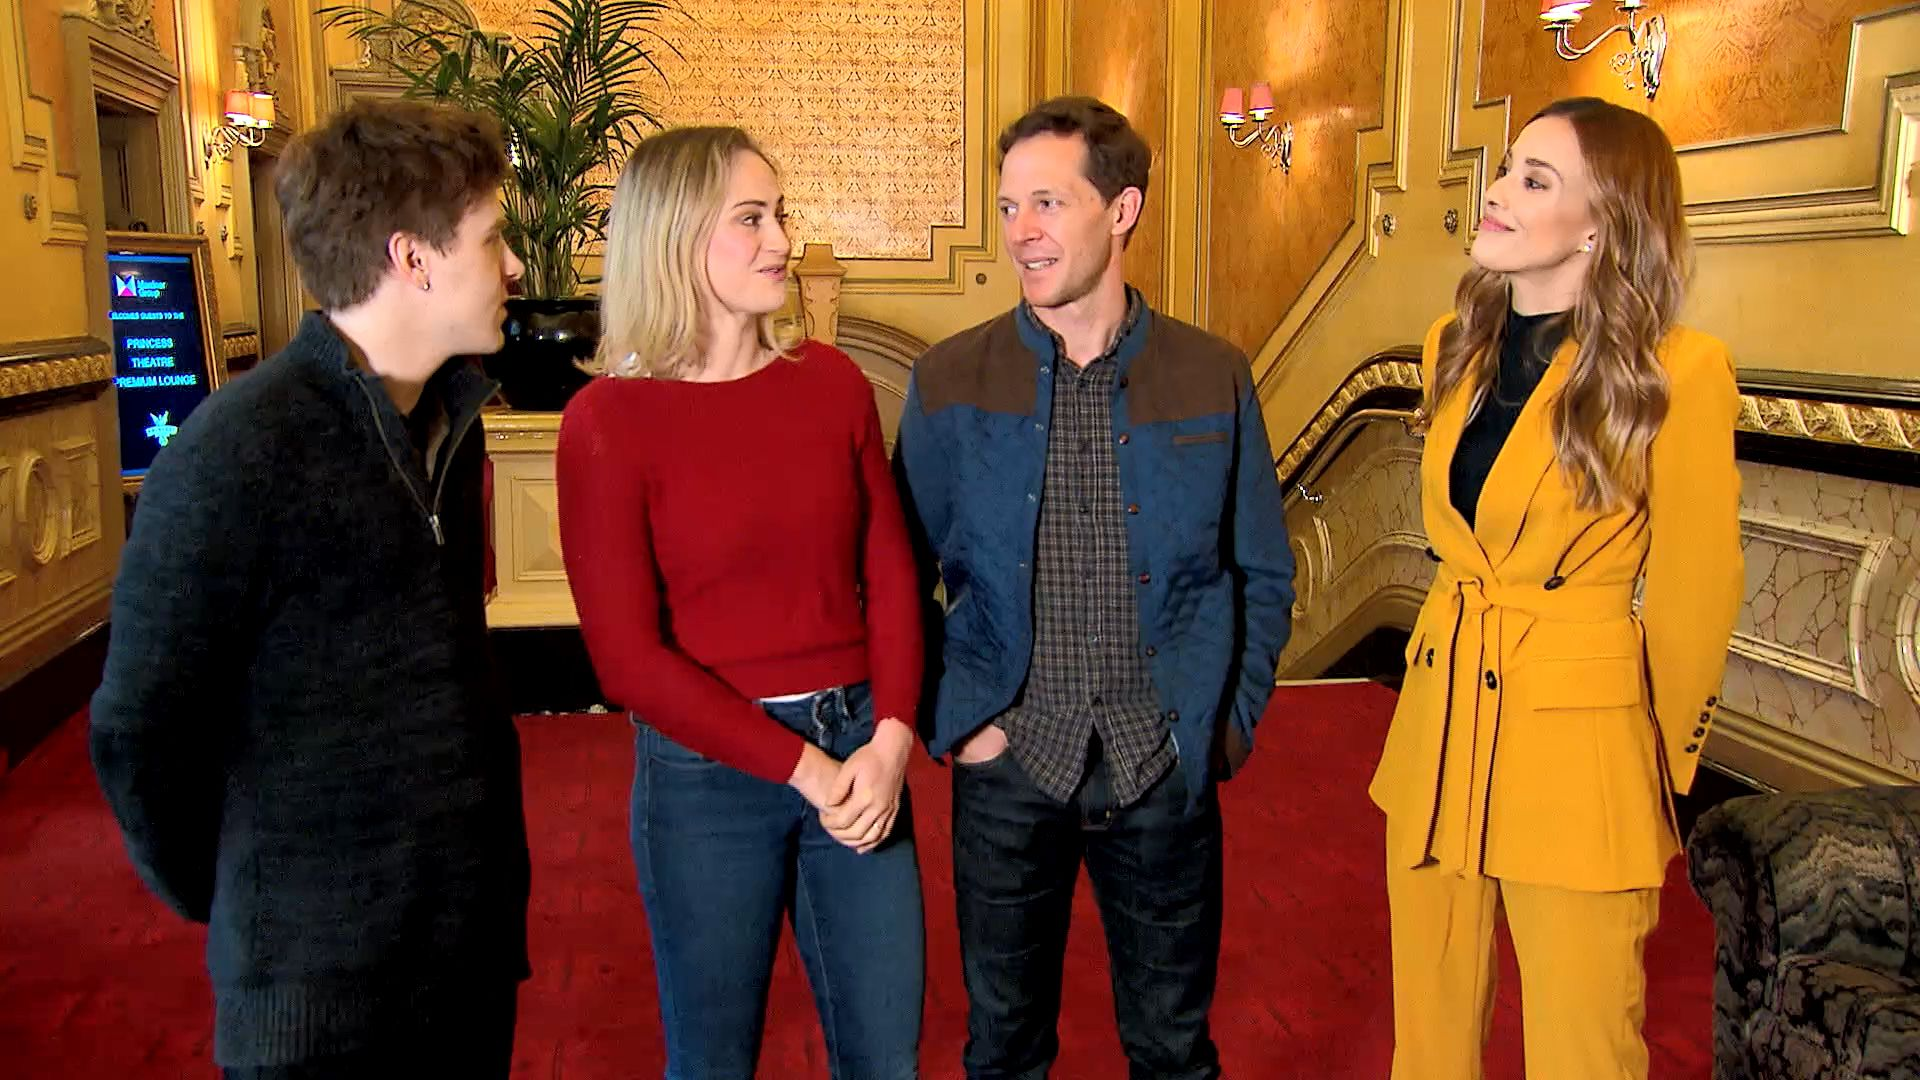 Bec meets the cast of 'Harry Potter and the Cursed Child': Postcards 2019,  Short Video